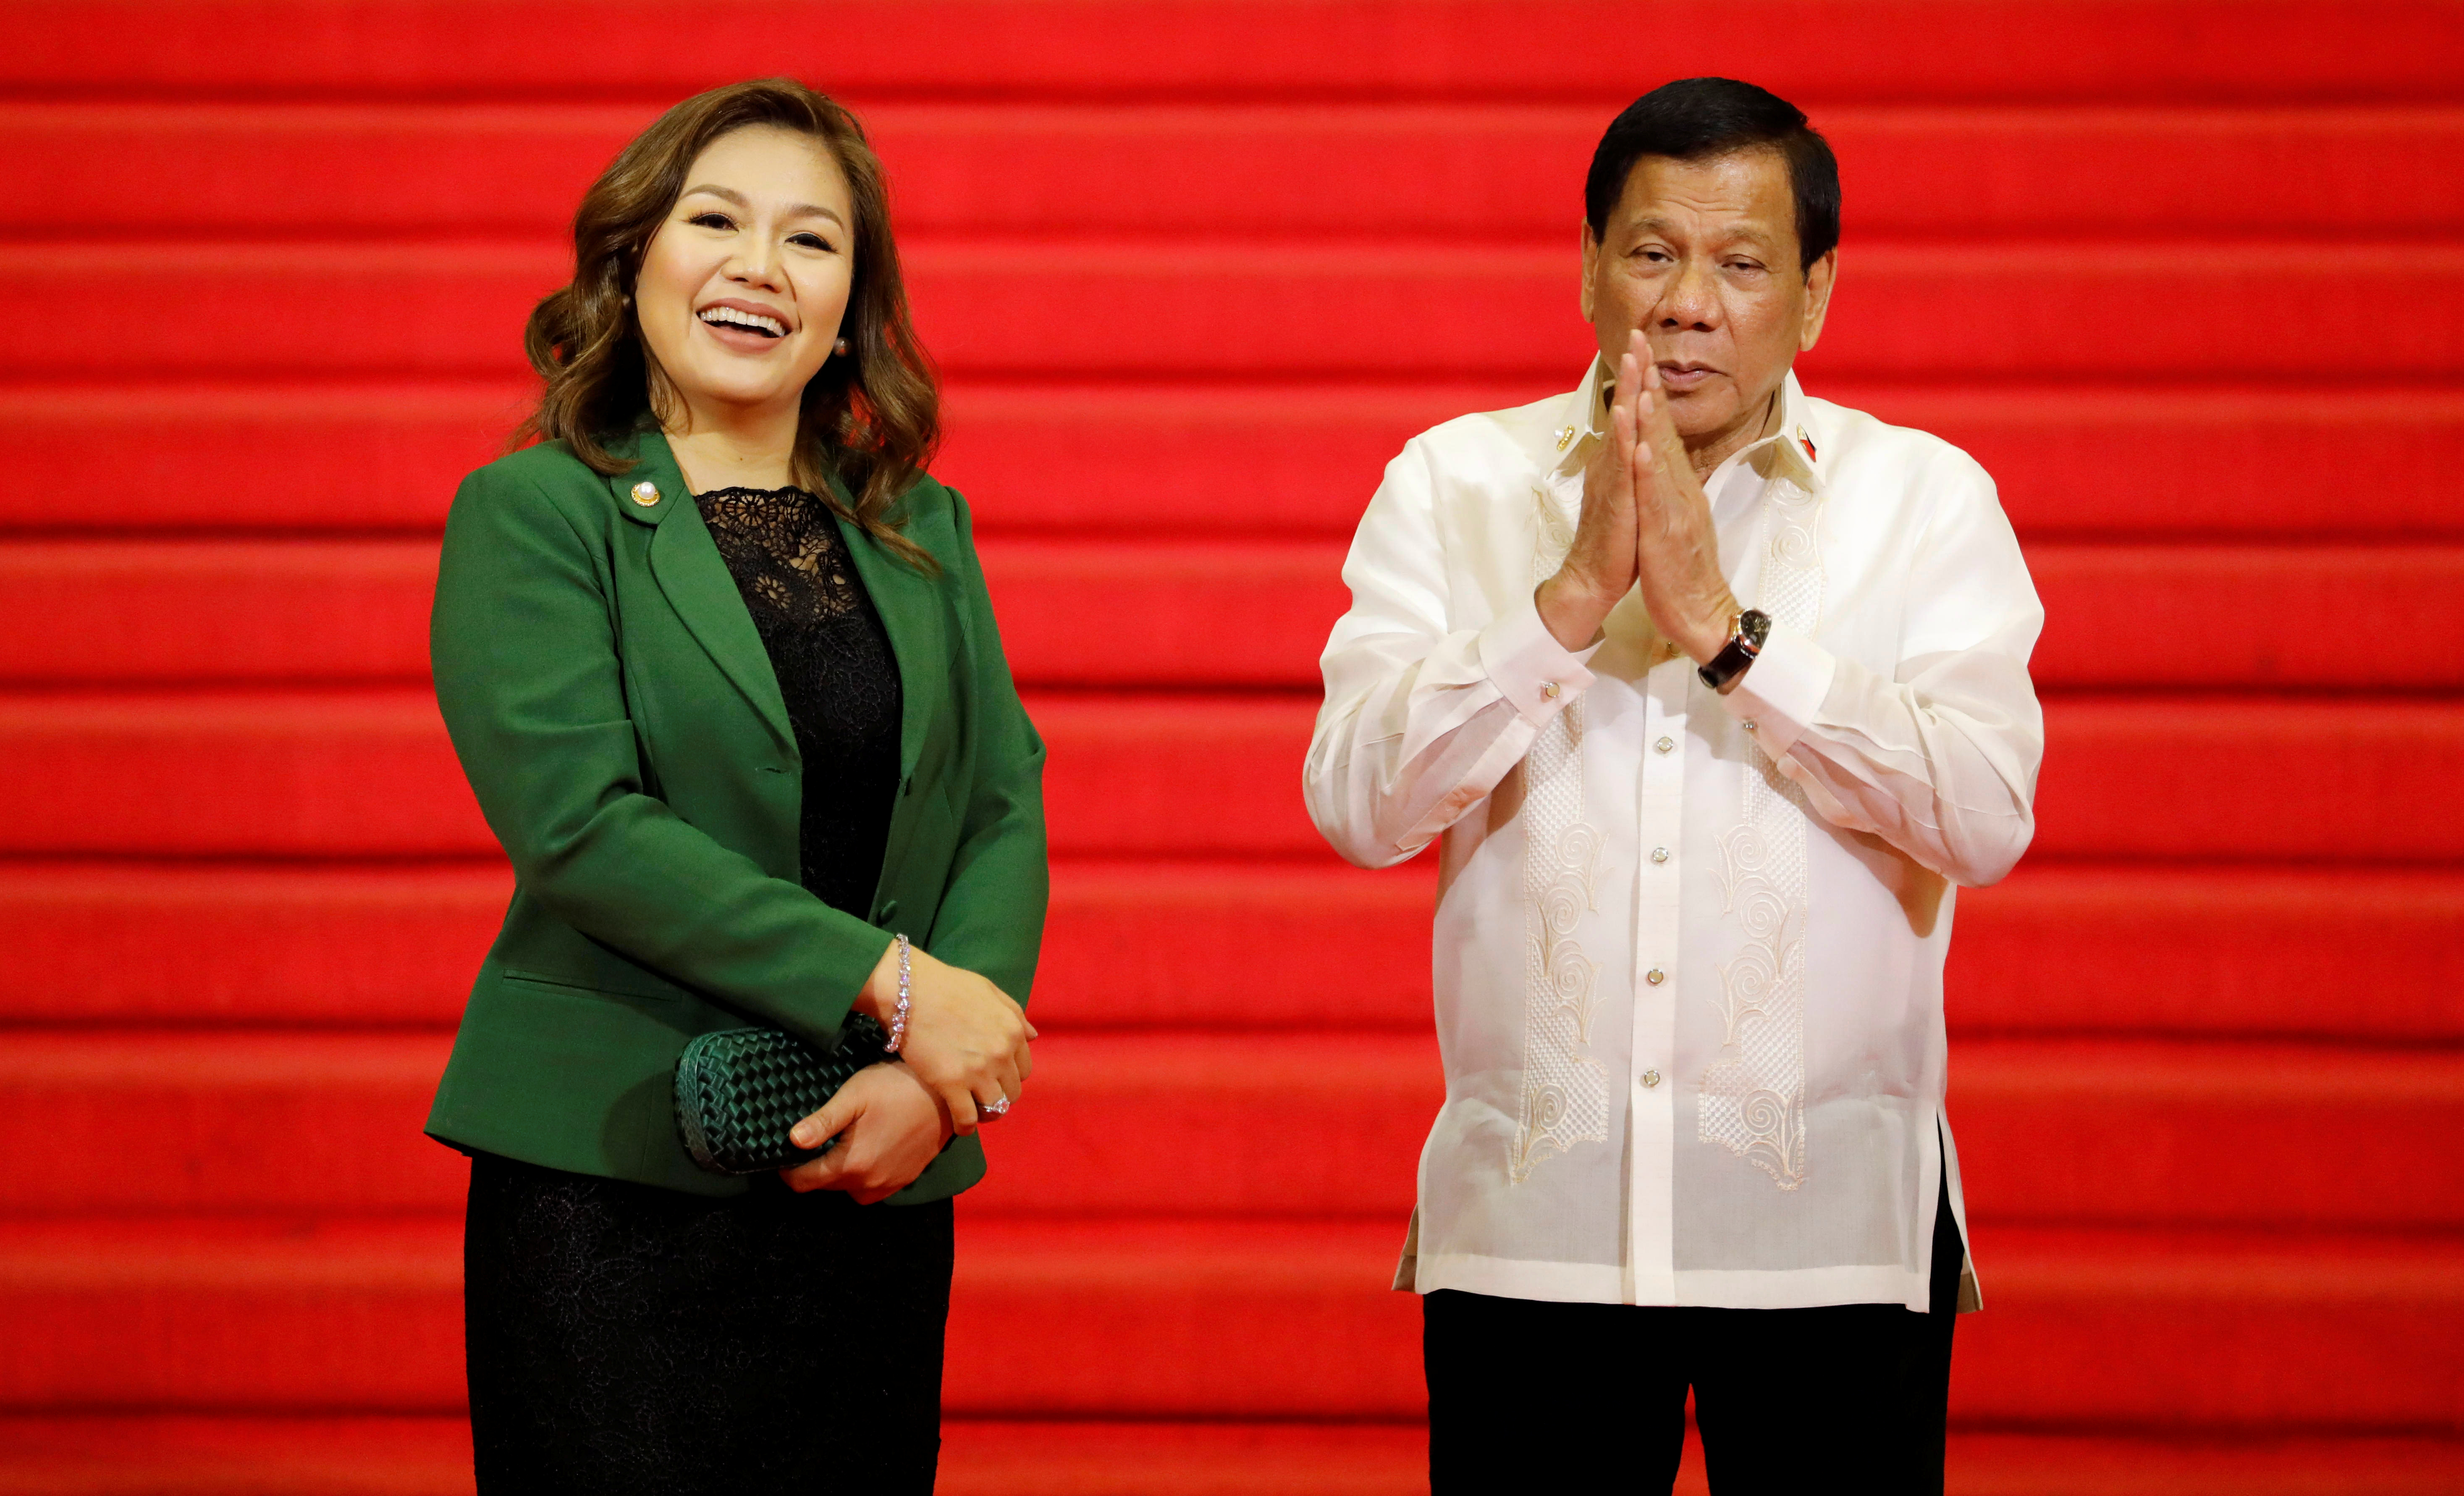 Philippine President Rodrigo Duterte and his partner Honeylet Avancena wait for other Southeast Asian leaders to arrive to the 30th Association of Southeast Asian Nations (ASEAN) summit in Manila, Philippines, April 29, 2017.